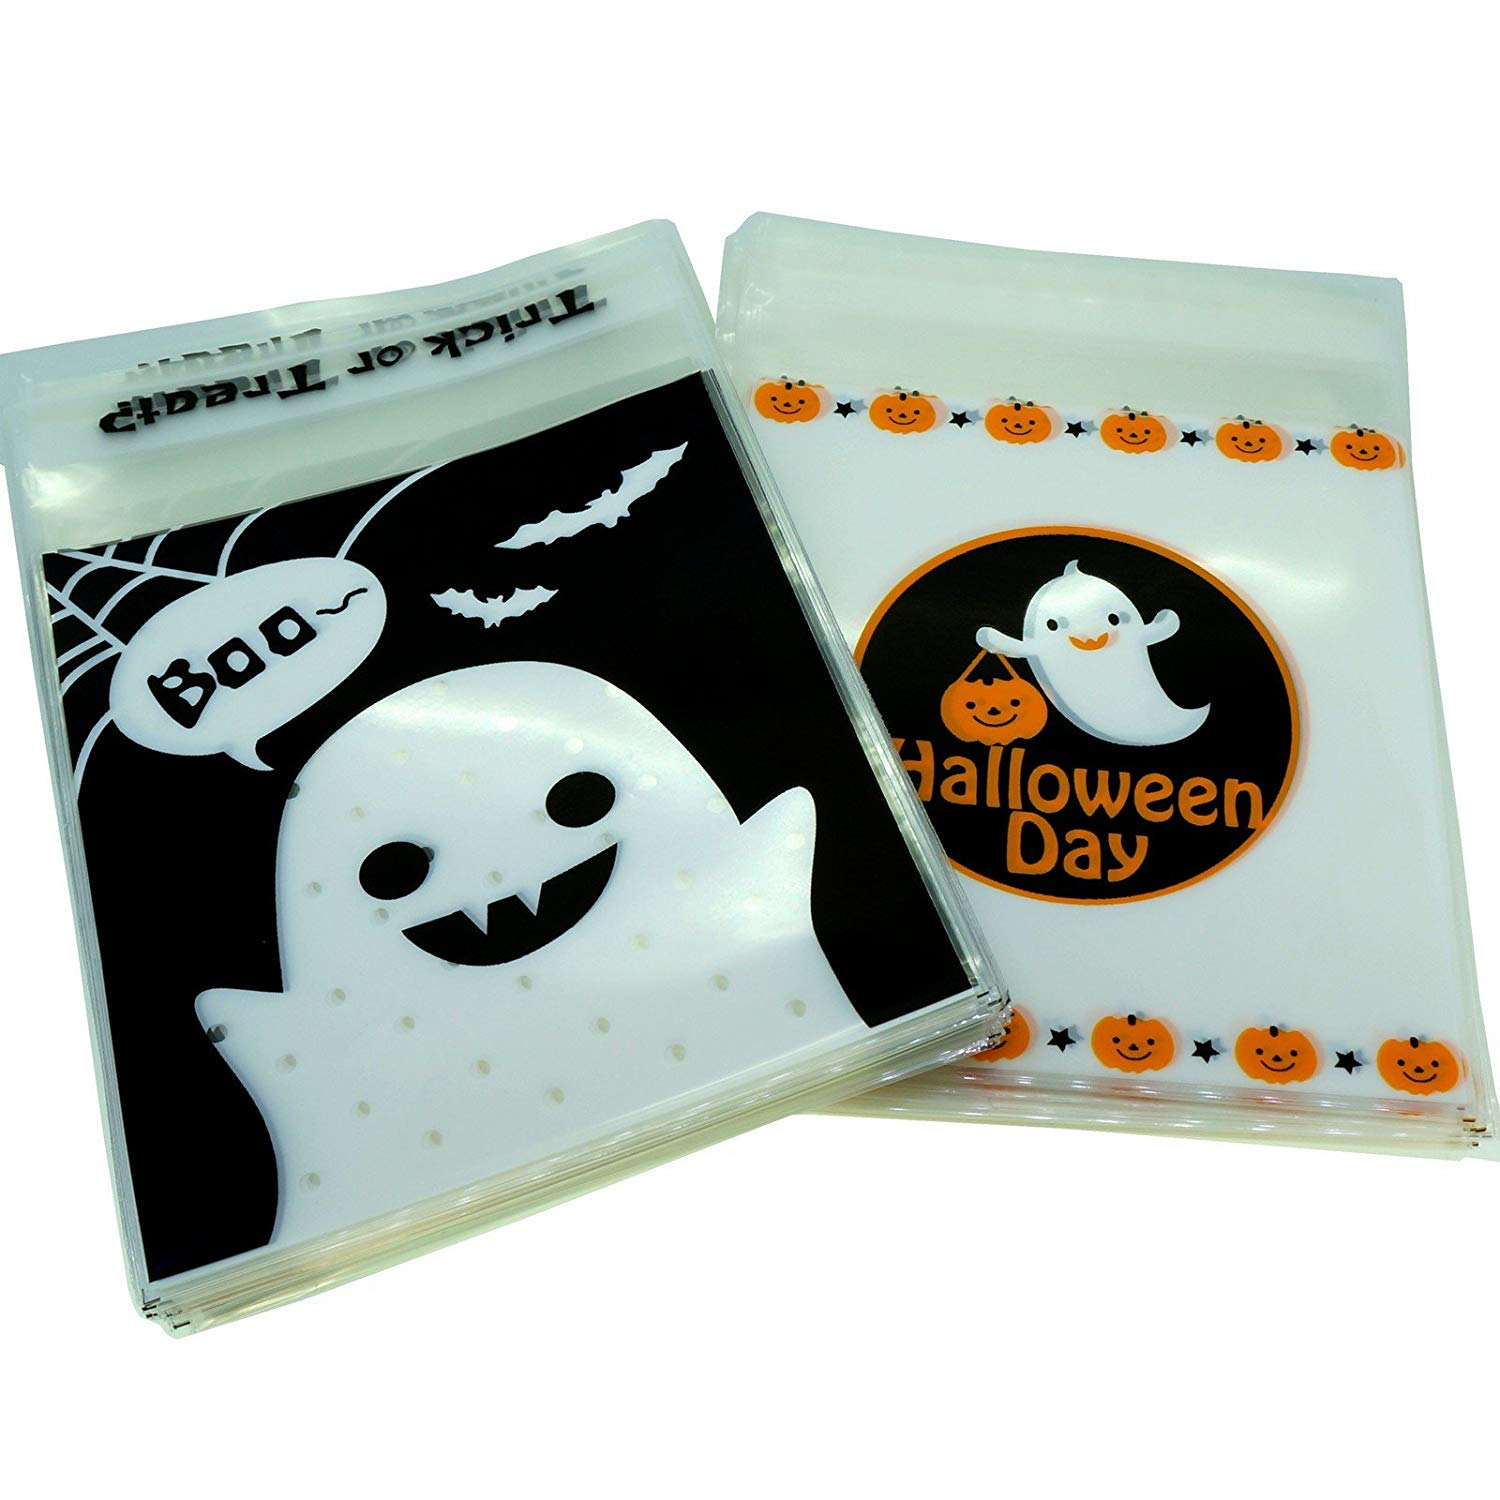 Halloween Treat Bags for Candy Cookie Chocolate Gift Wrapping Packaging, Pack of 95, 10x10cm, 2 Designs Mix